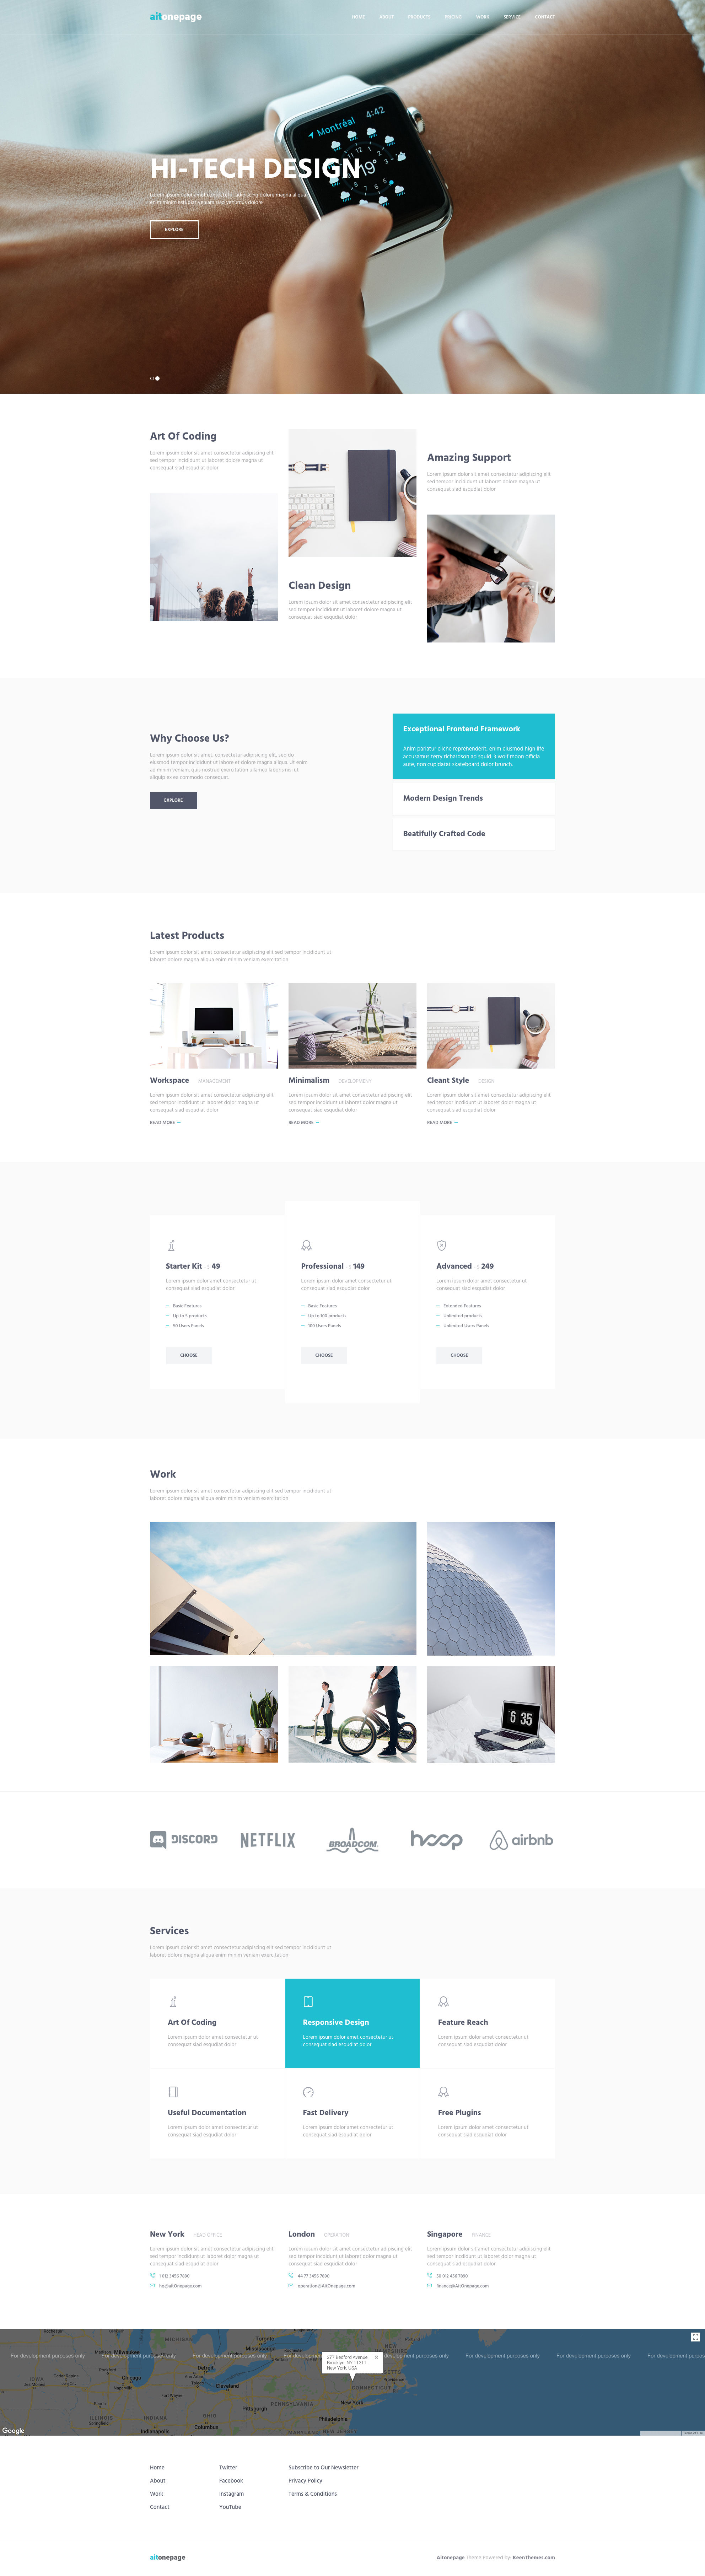 Aitonepage is a free responsive HTML5 one page business website template using Bootstrap 3. This template has clean and elegant design with lots of whitespace and it's perfect for any kind of business websites. Aitonepage template is uses HTML5 and CSS3 web technologies, fully responsive and built with Bootstrap 3 Responsive CSS Grid System.